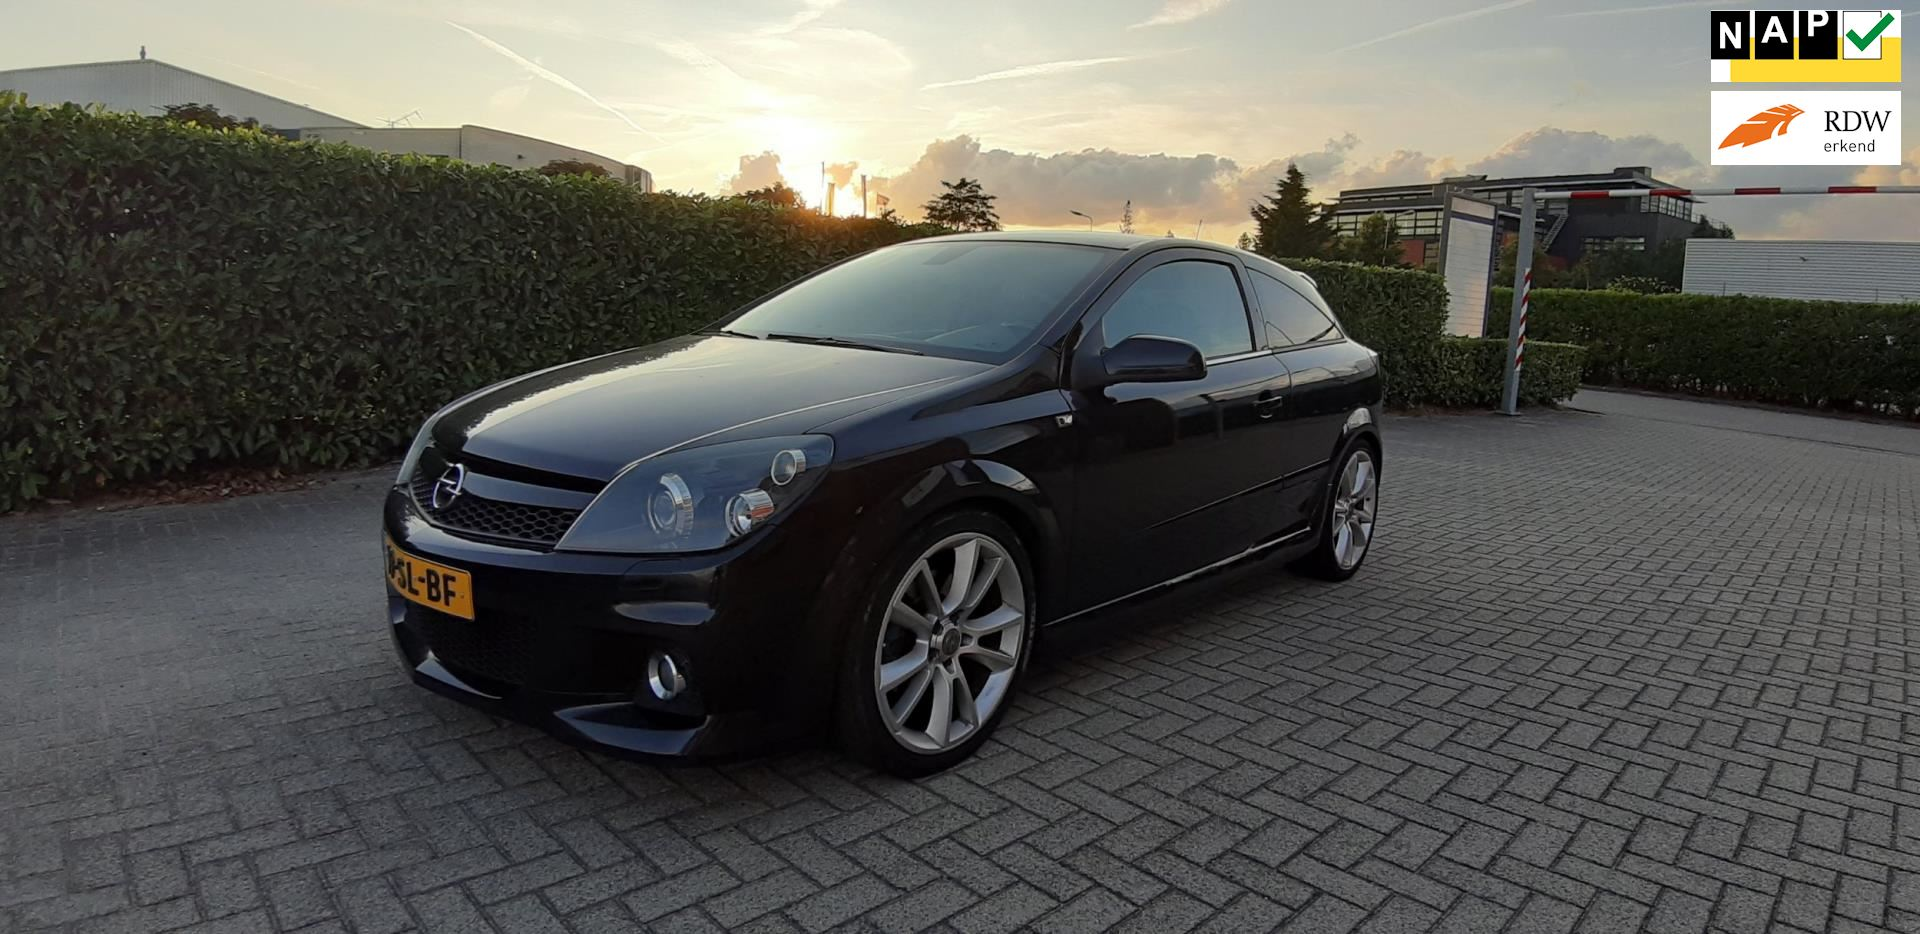 Opel Astra GTC occasion - YoungTimersHolland